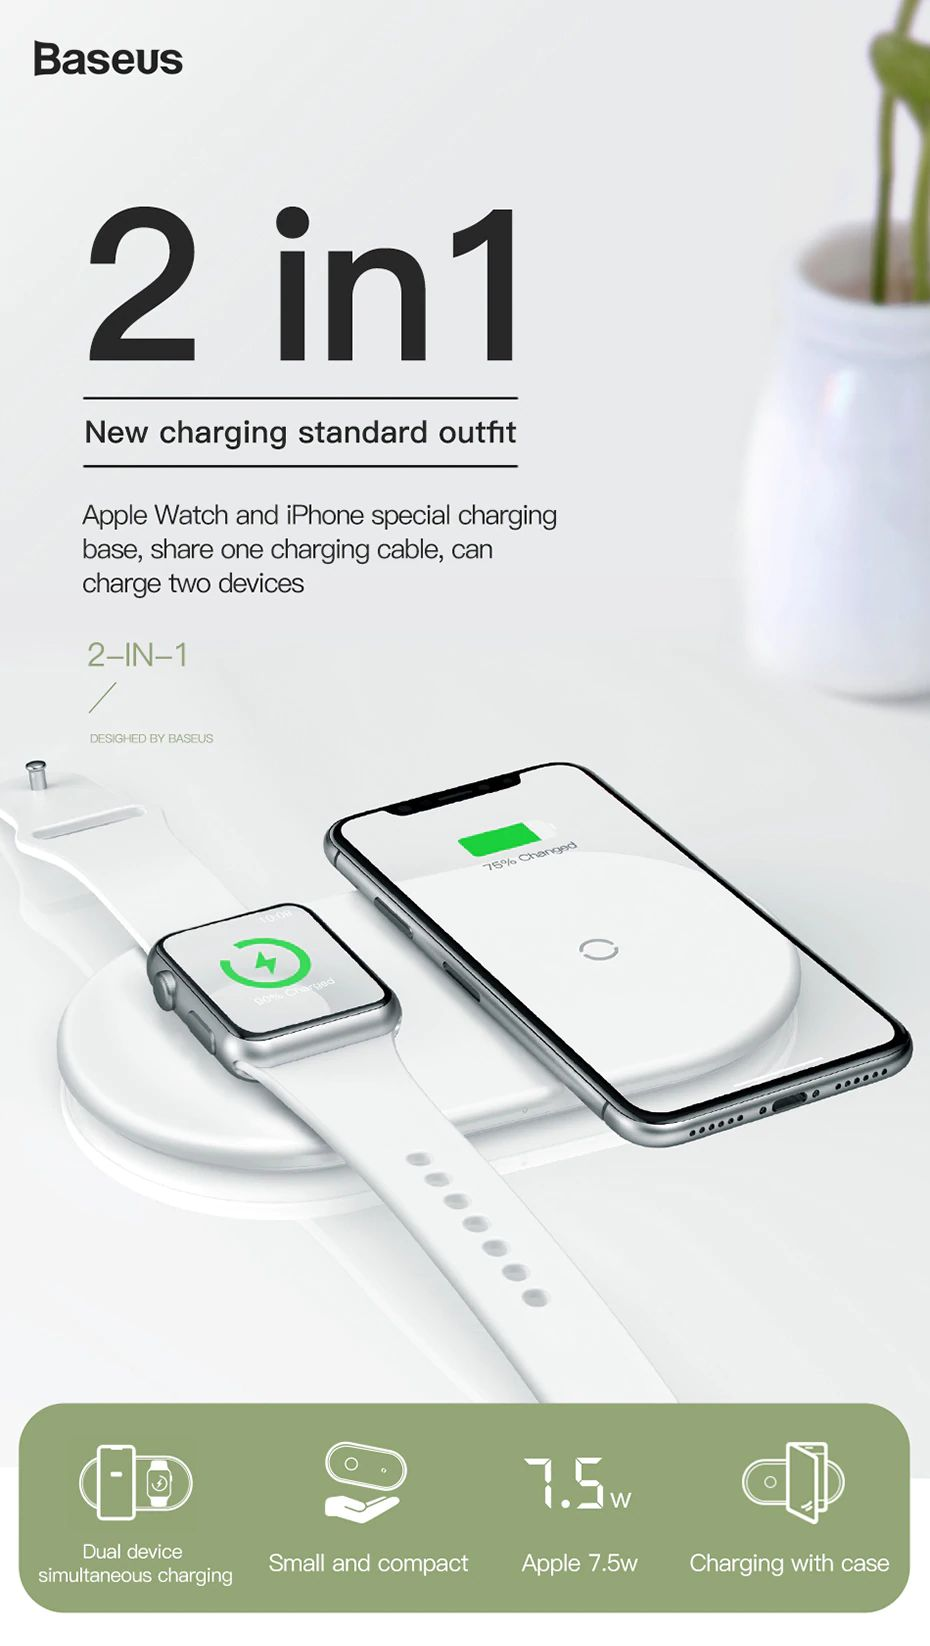 Baseus Smart 2 In 1 Wireless Qi Charger For Iphone Apple Watch (15)